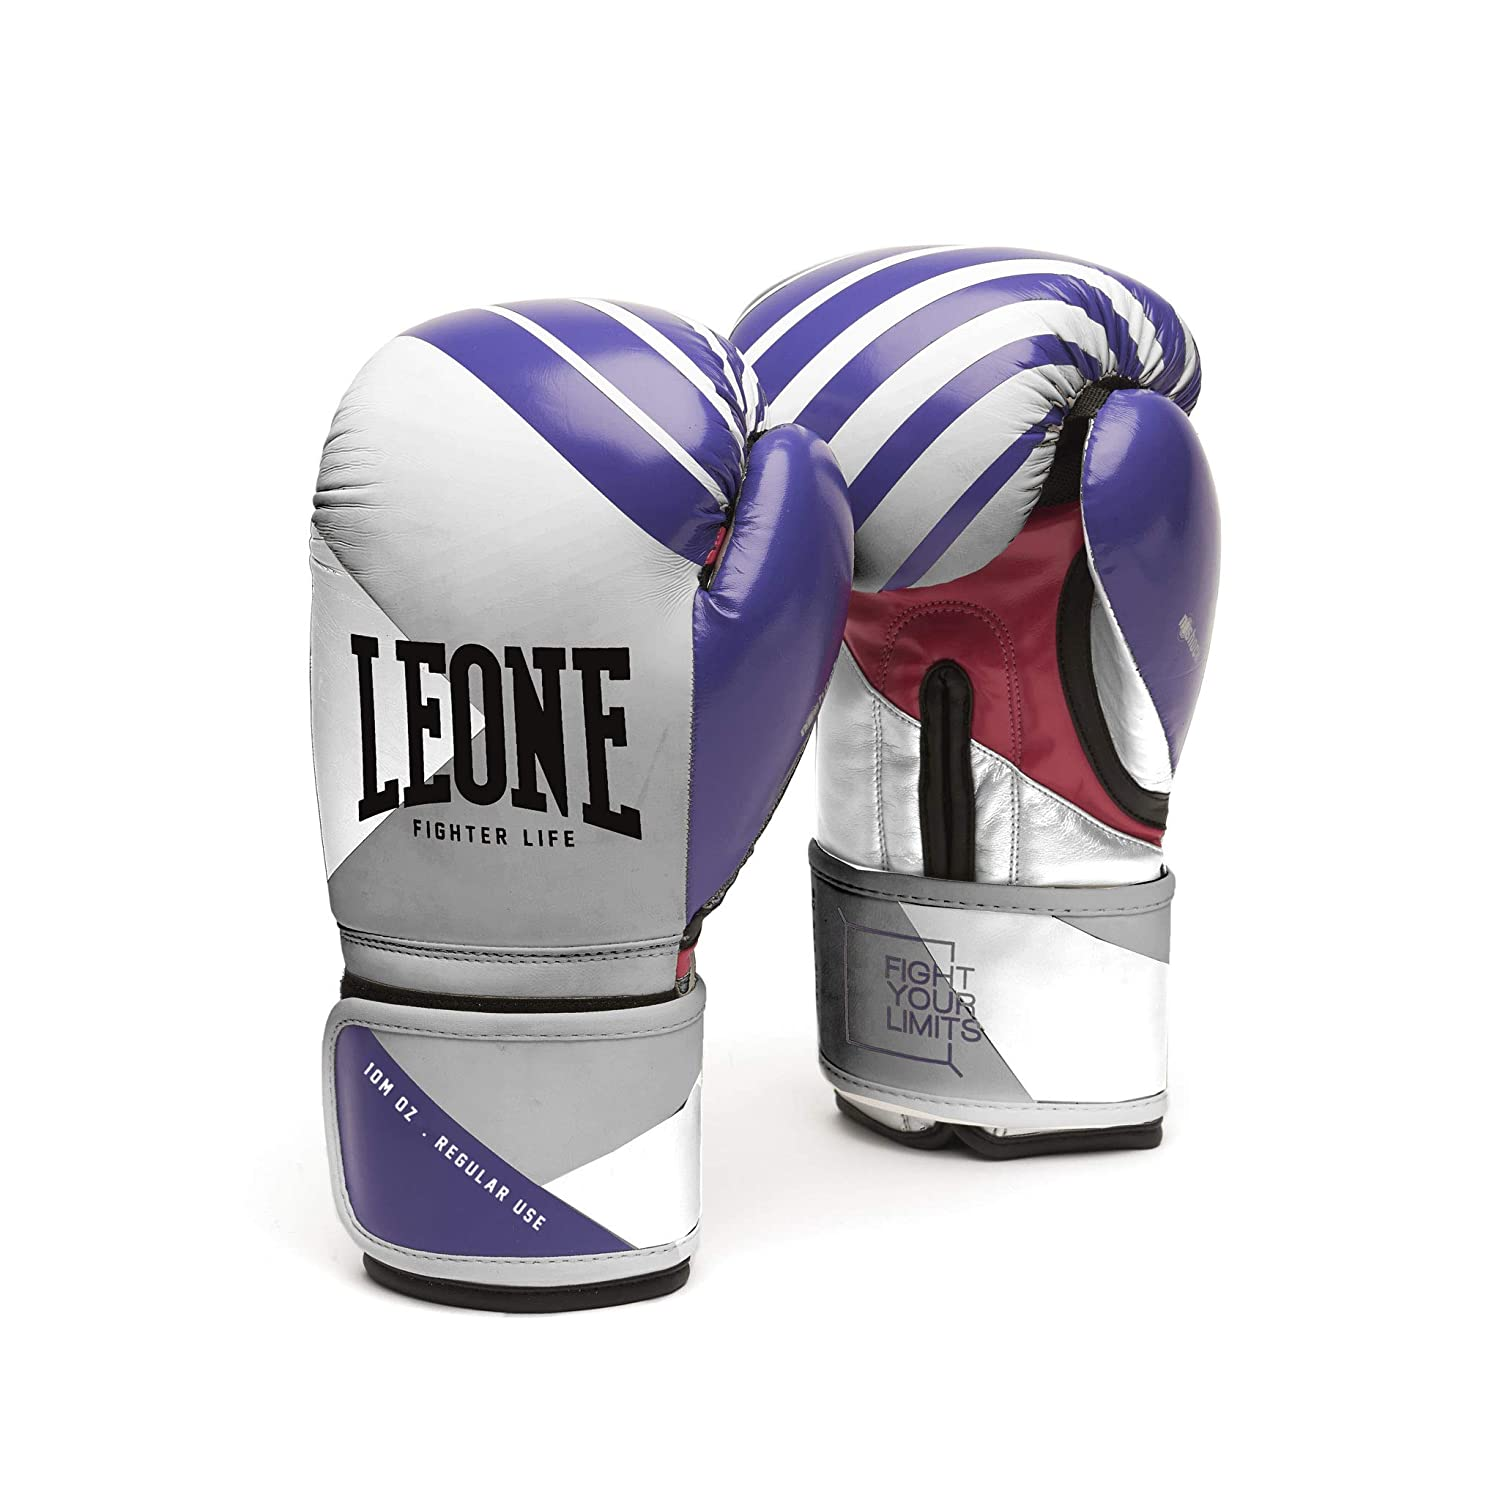 GUANTO BOXE FIGHTER LIFE - 31335 - 1